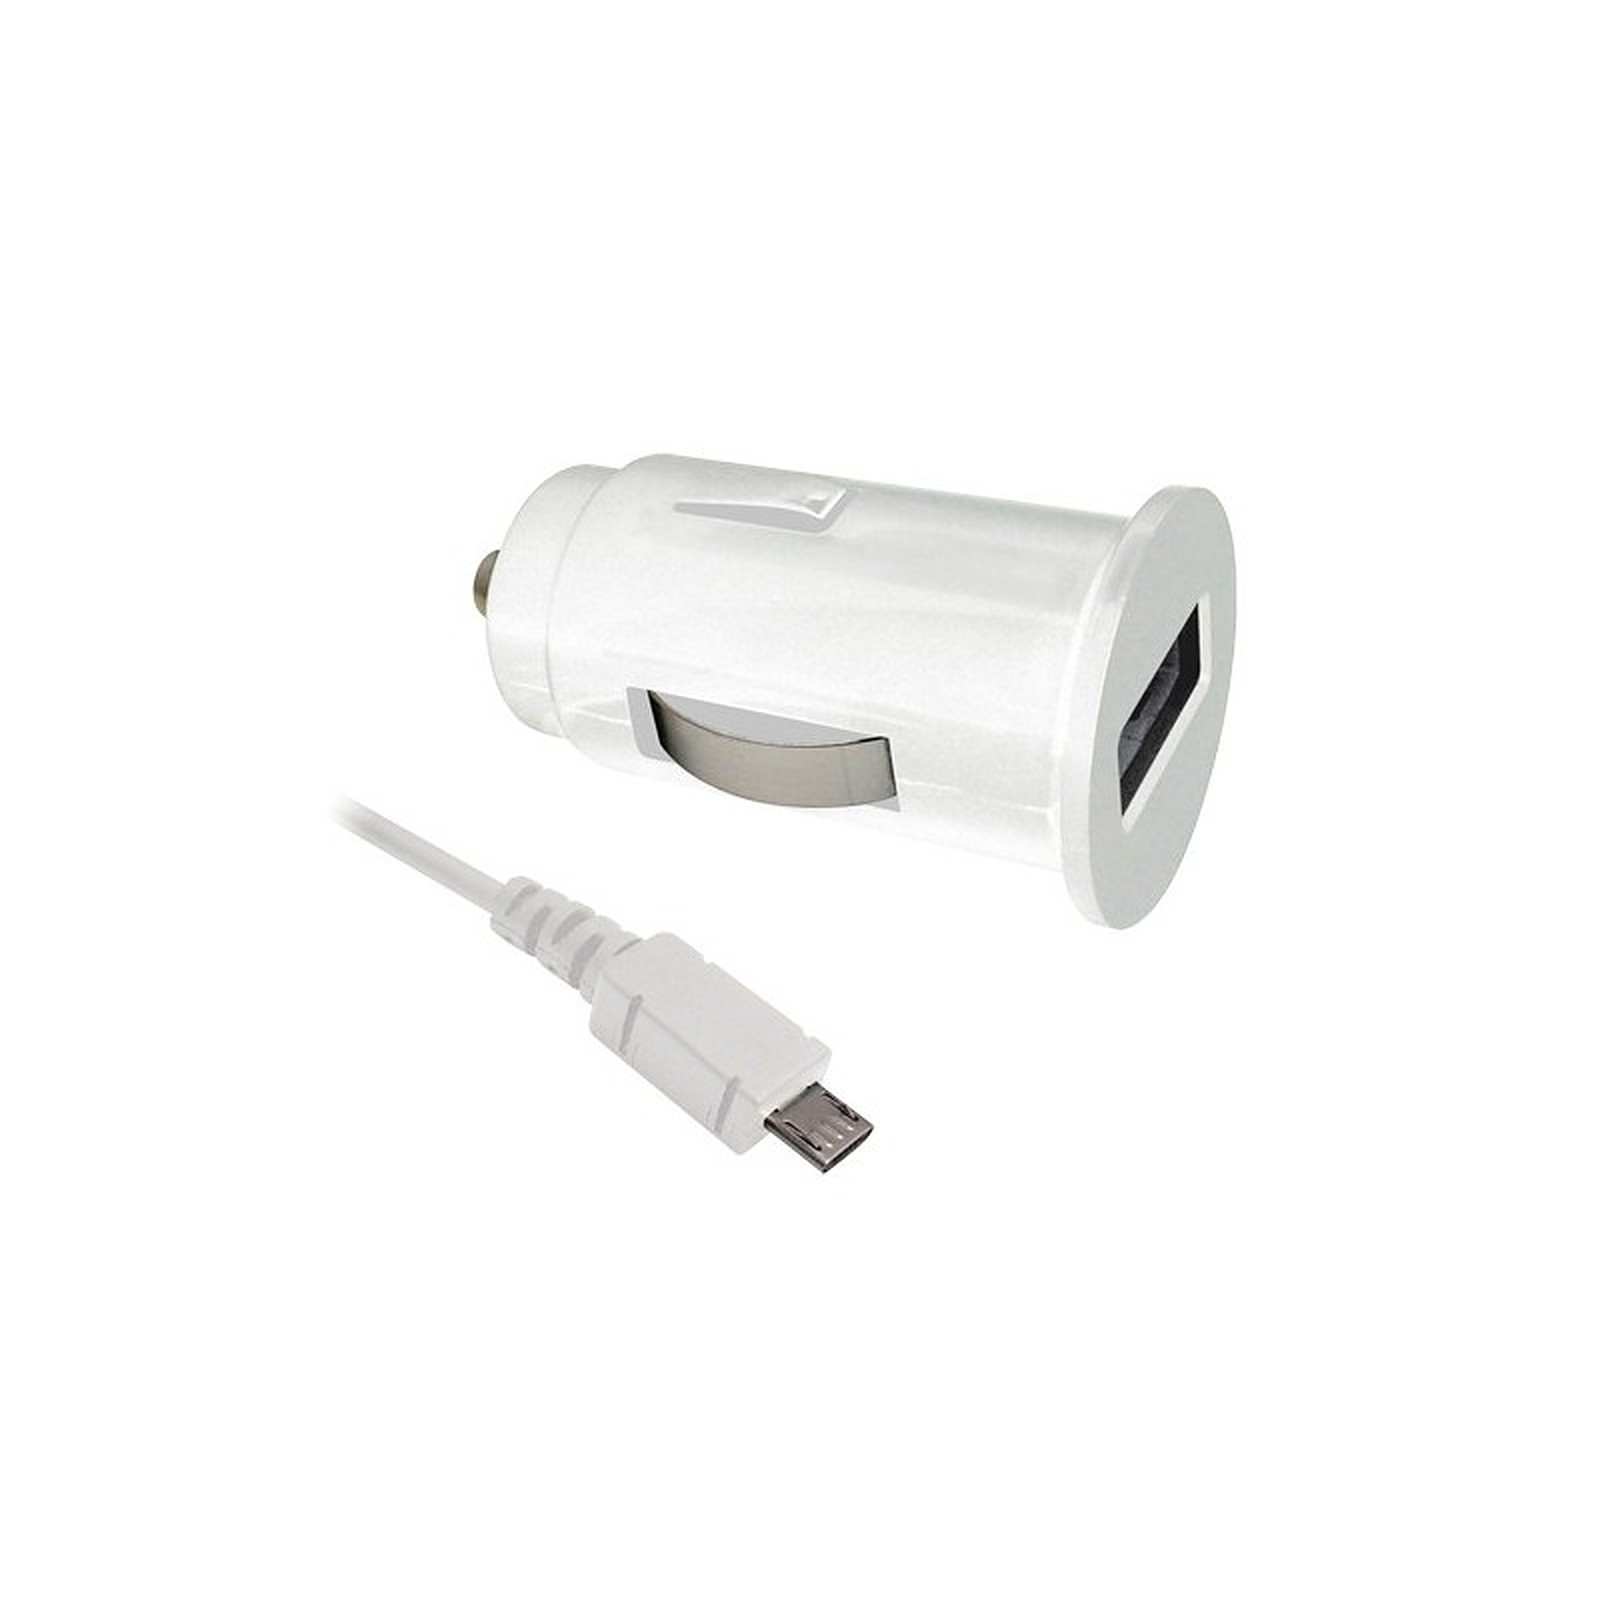 LDLC AC+ Chargeur voiture 2.1A + 1A Chargeur allume cigare